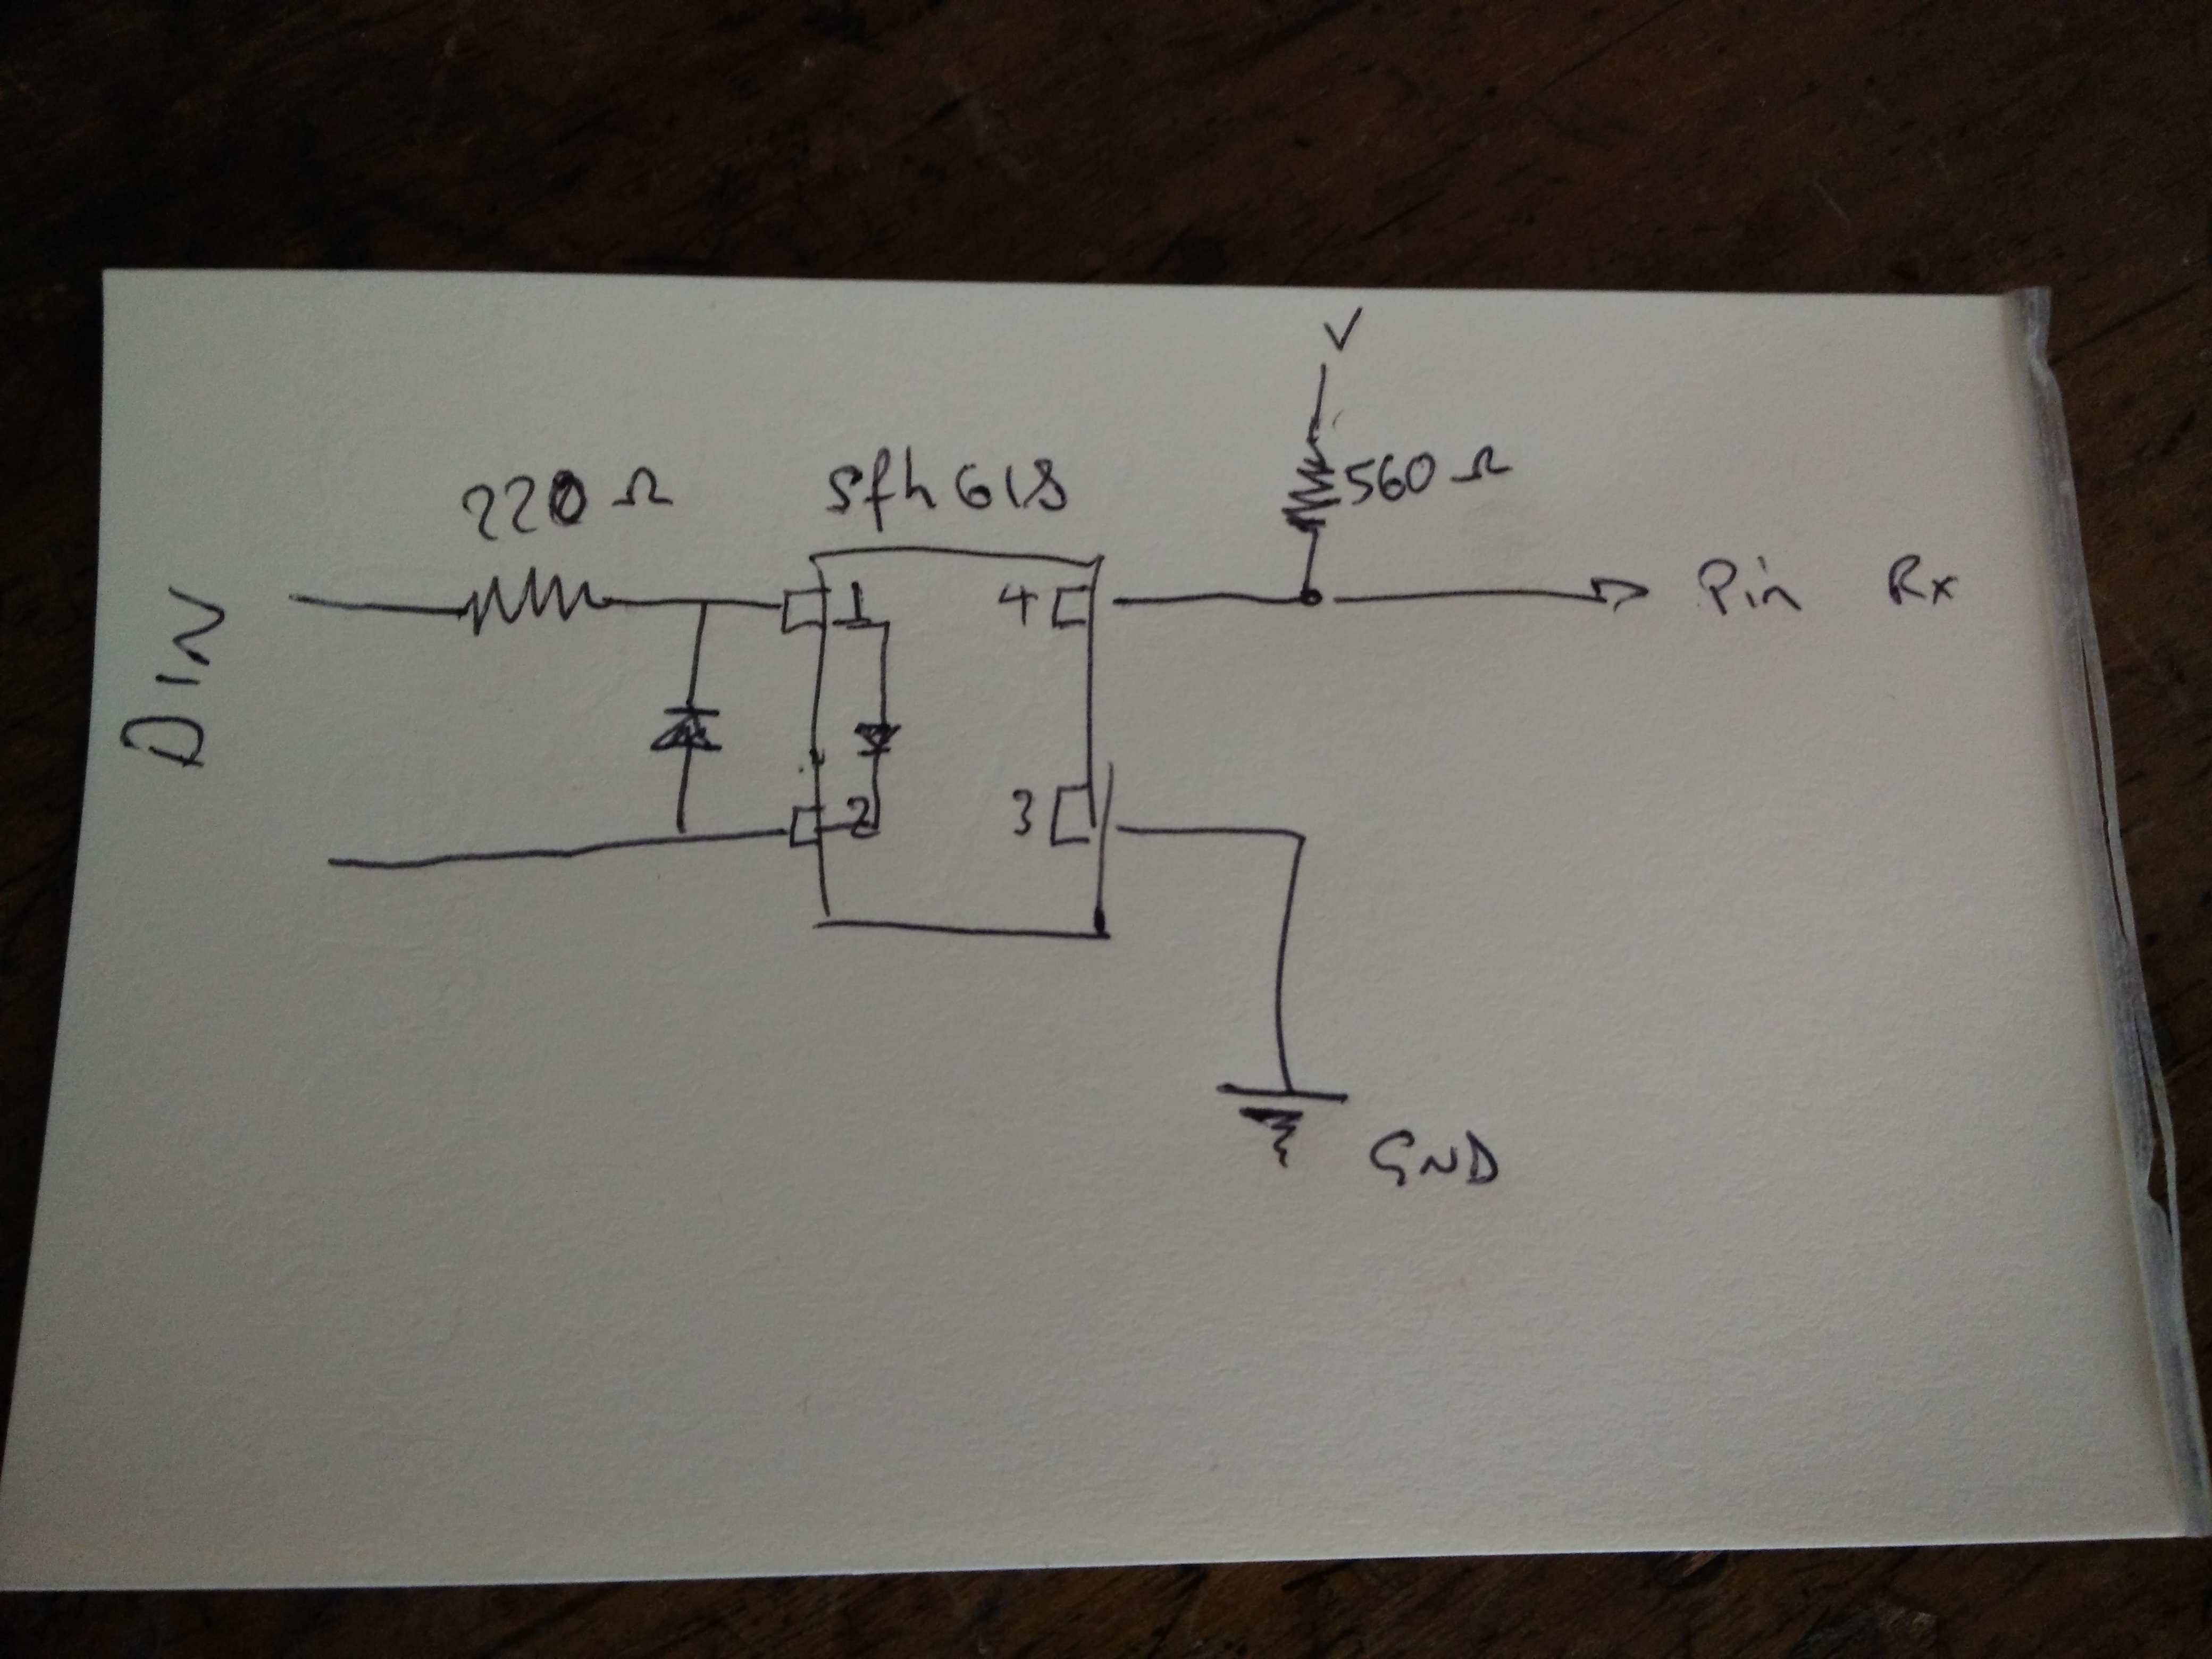 teensy 3 midi din to cv out orchardelica blog here is the wiring diagram for the opto coupler